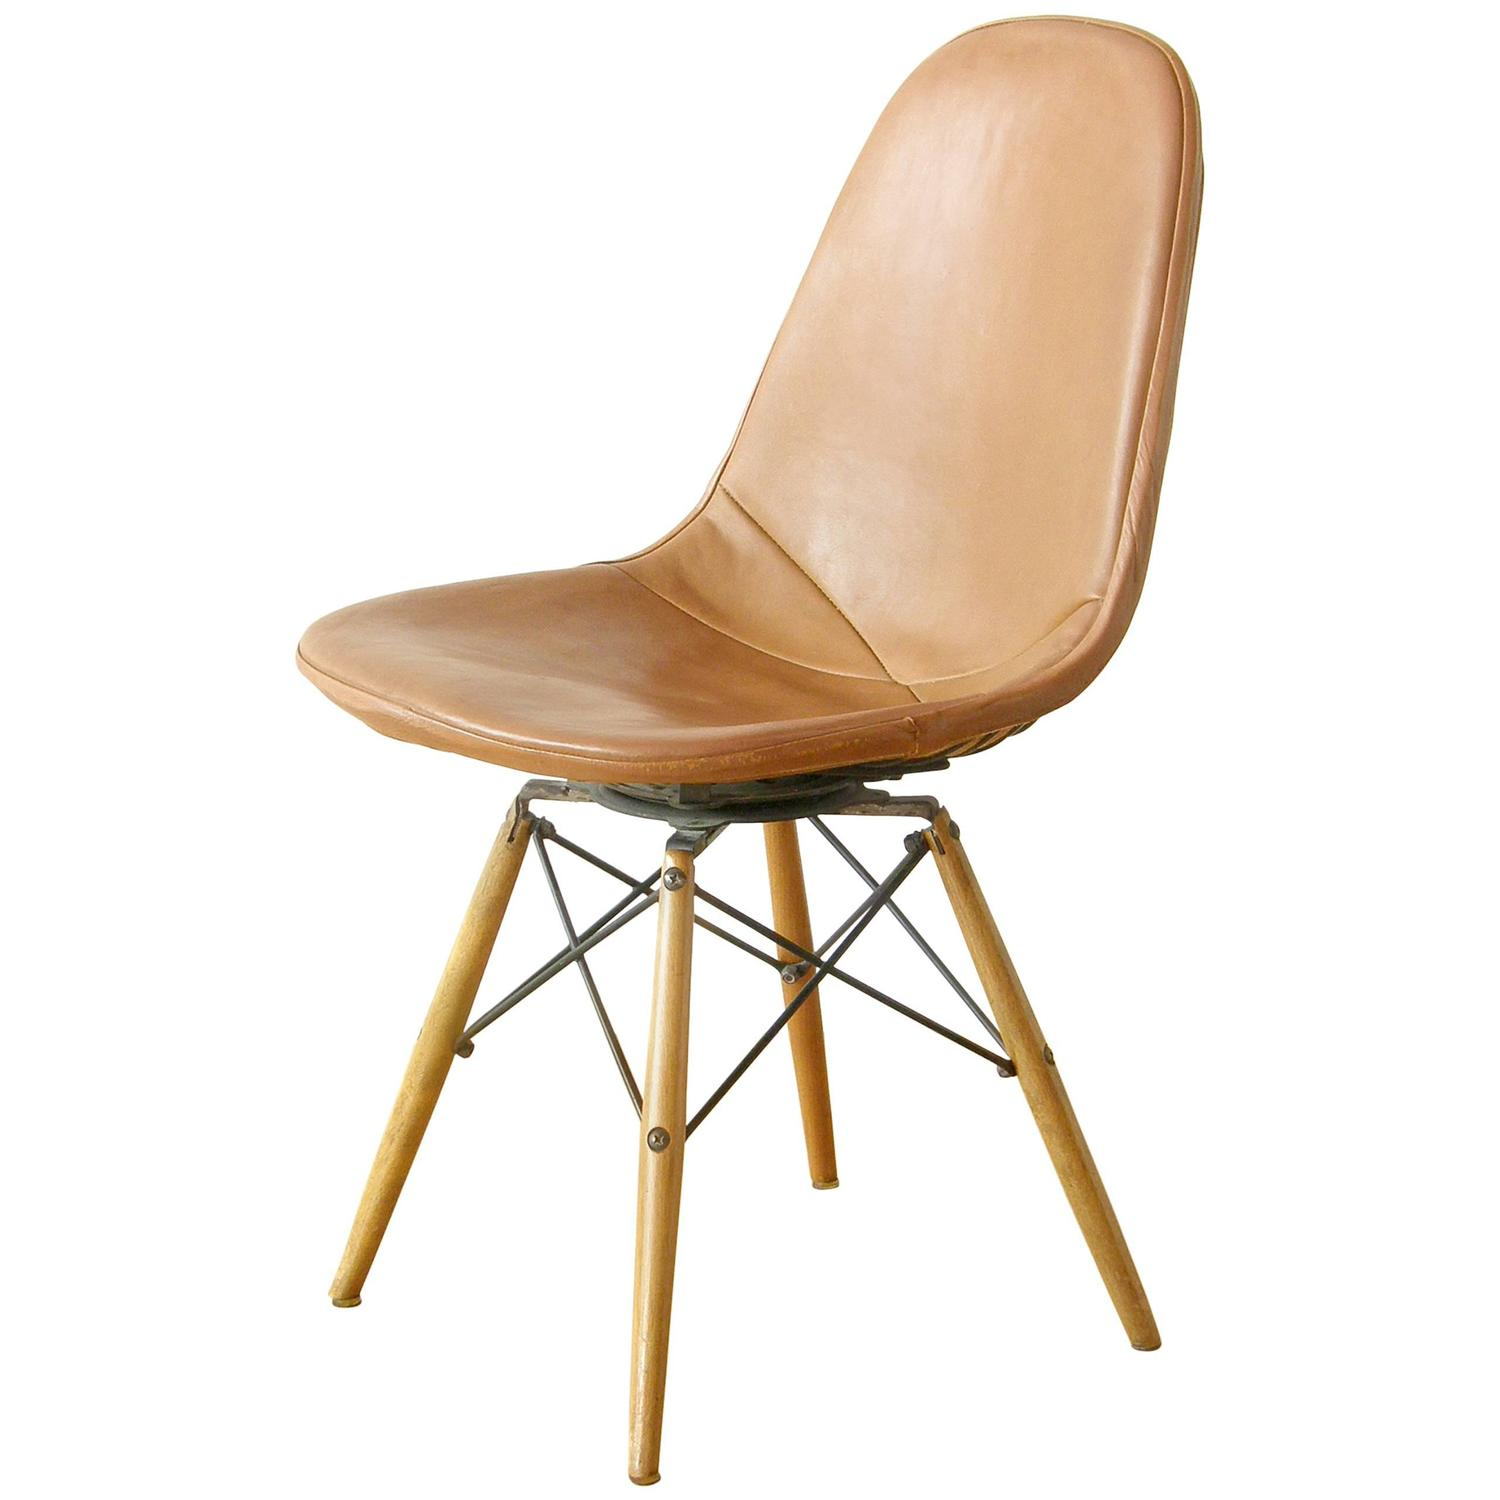 swivel chair wooden legs beige banquet covers eames dowel leg at 1stdibs